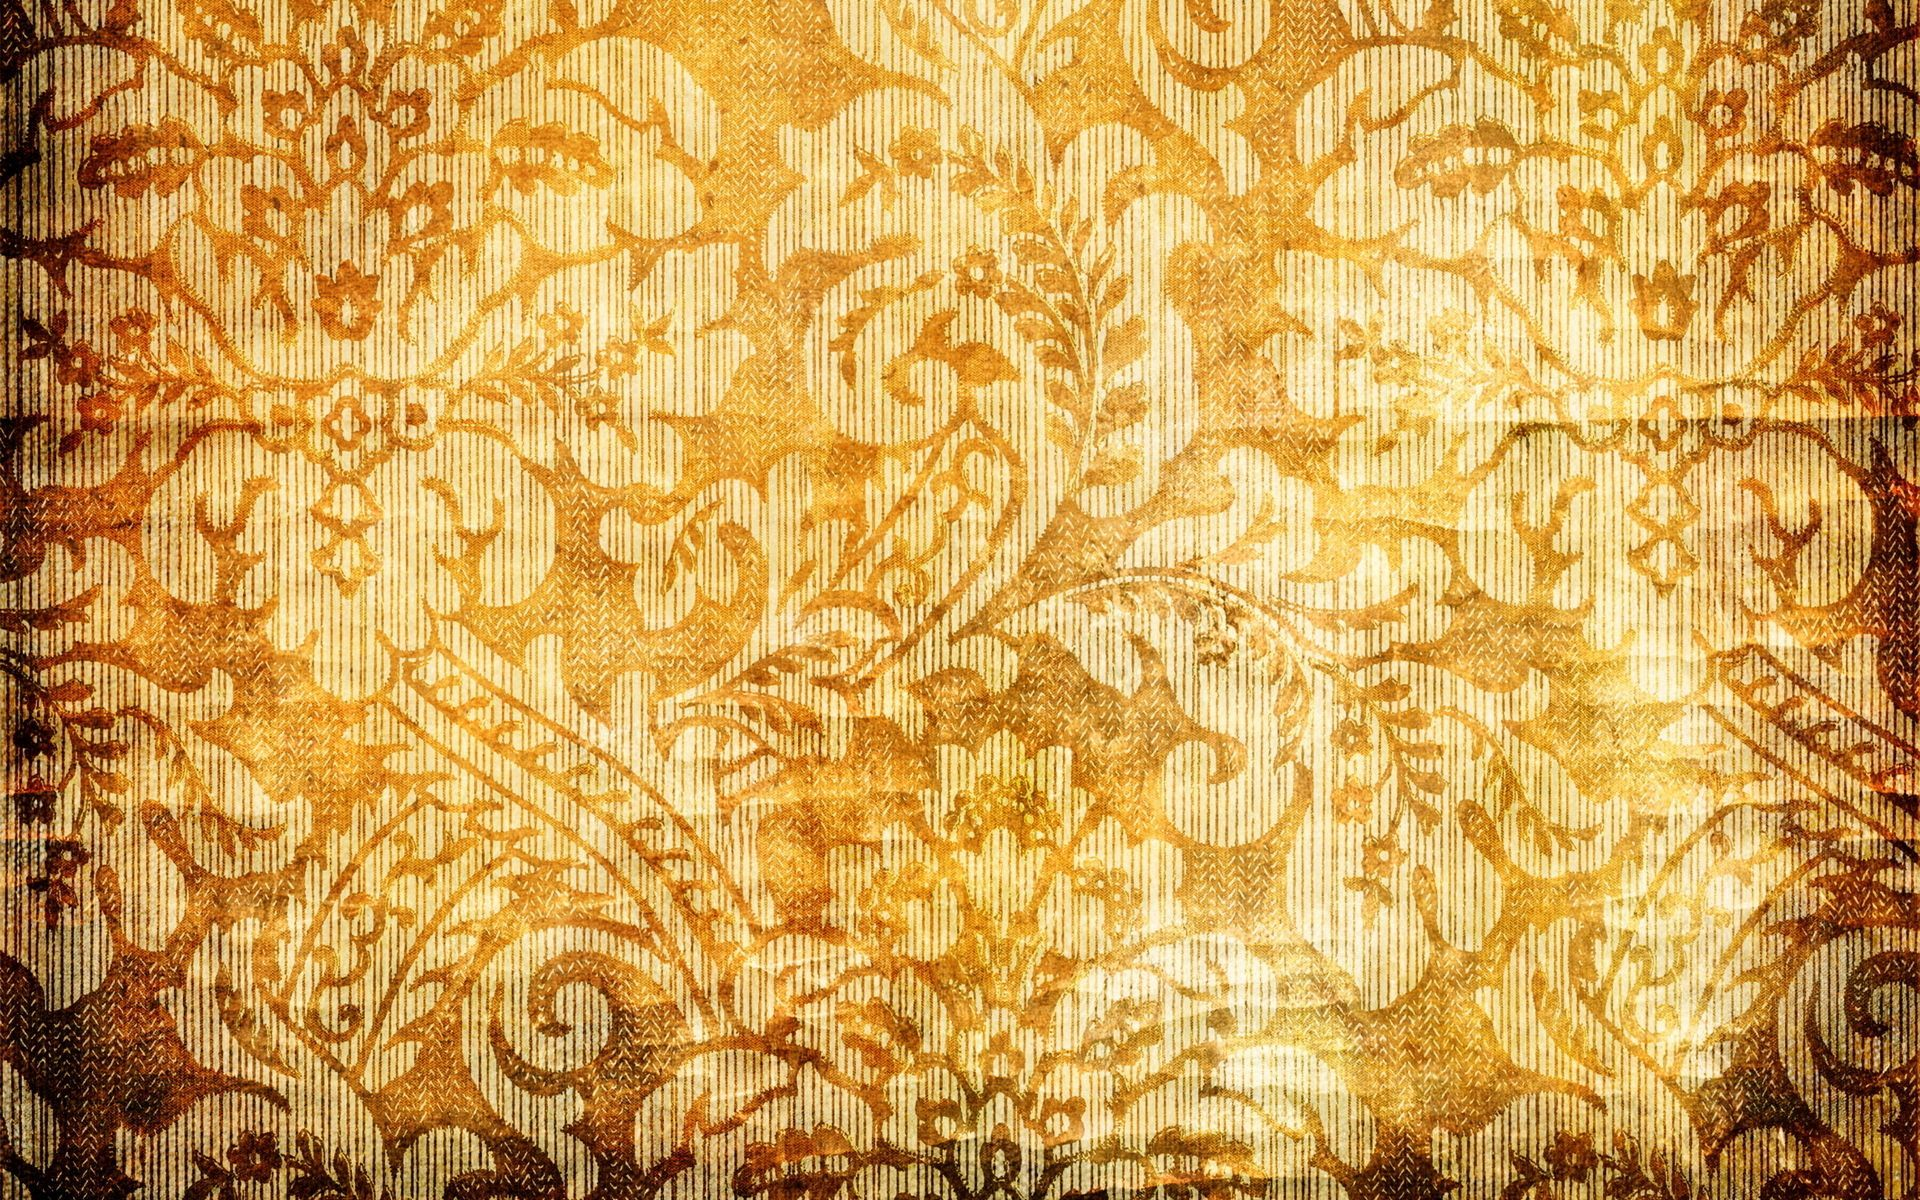 30 hd orange wallpapers for Gold wallpaper designs